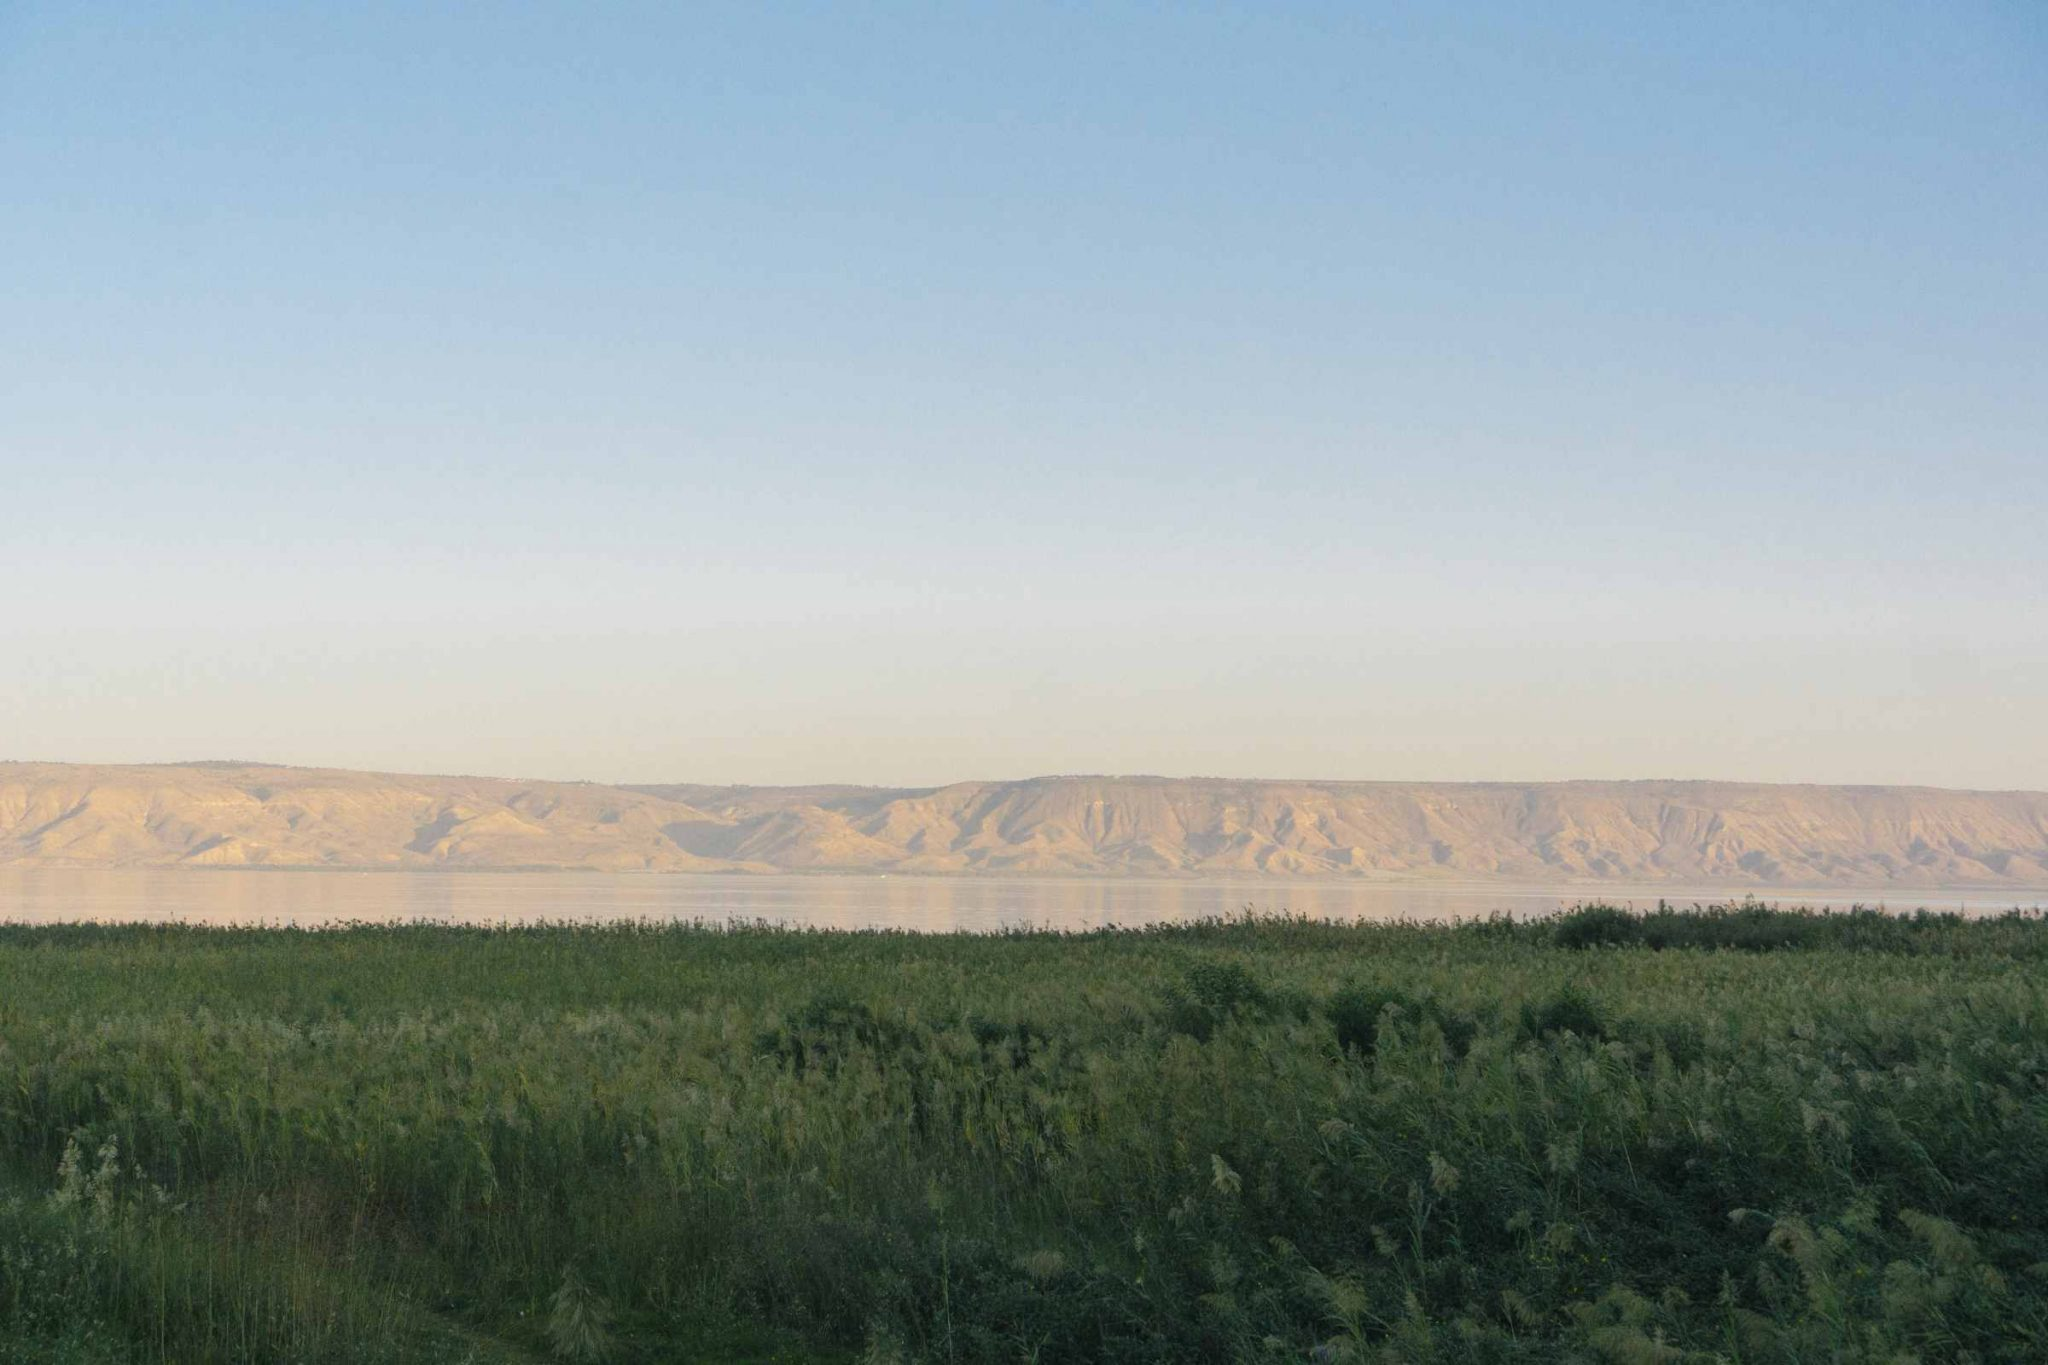 From recycling over 80% of its water to literally creating water out of thin air, Israel leads the way in innovation. Here are five things Israel does that the dry Western states might learn from.